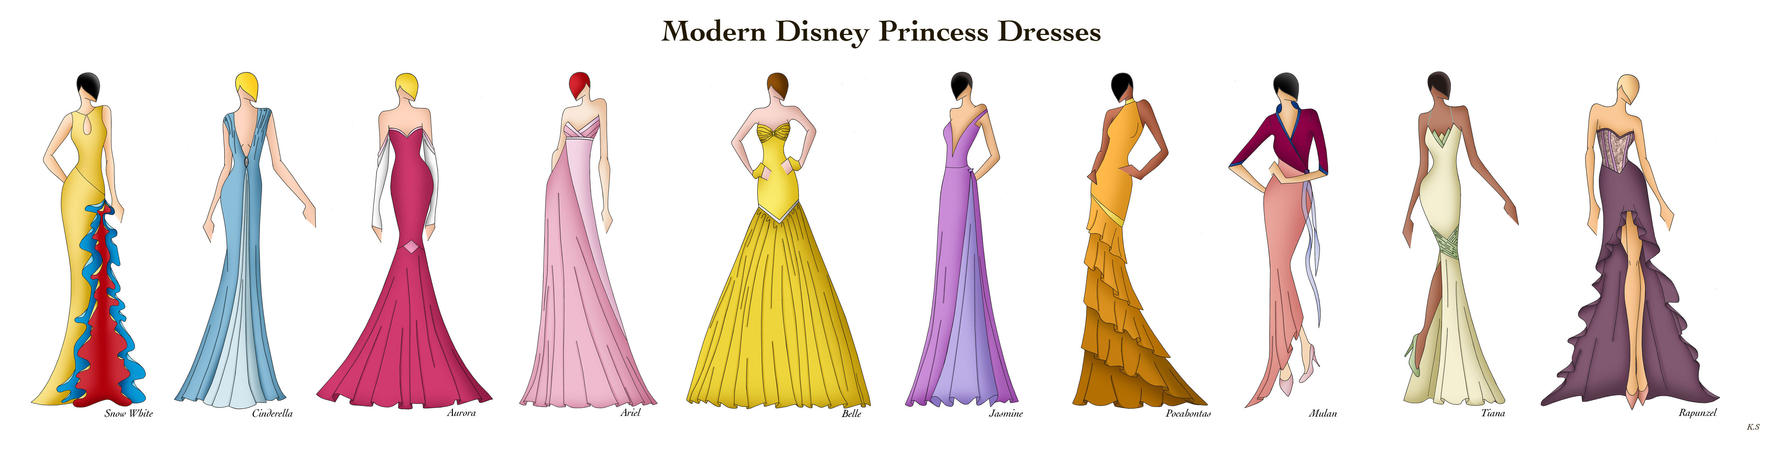 Modern Disney Princess Dresses by Ellevira on DeviantArt